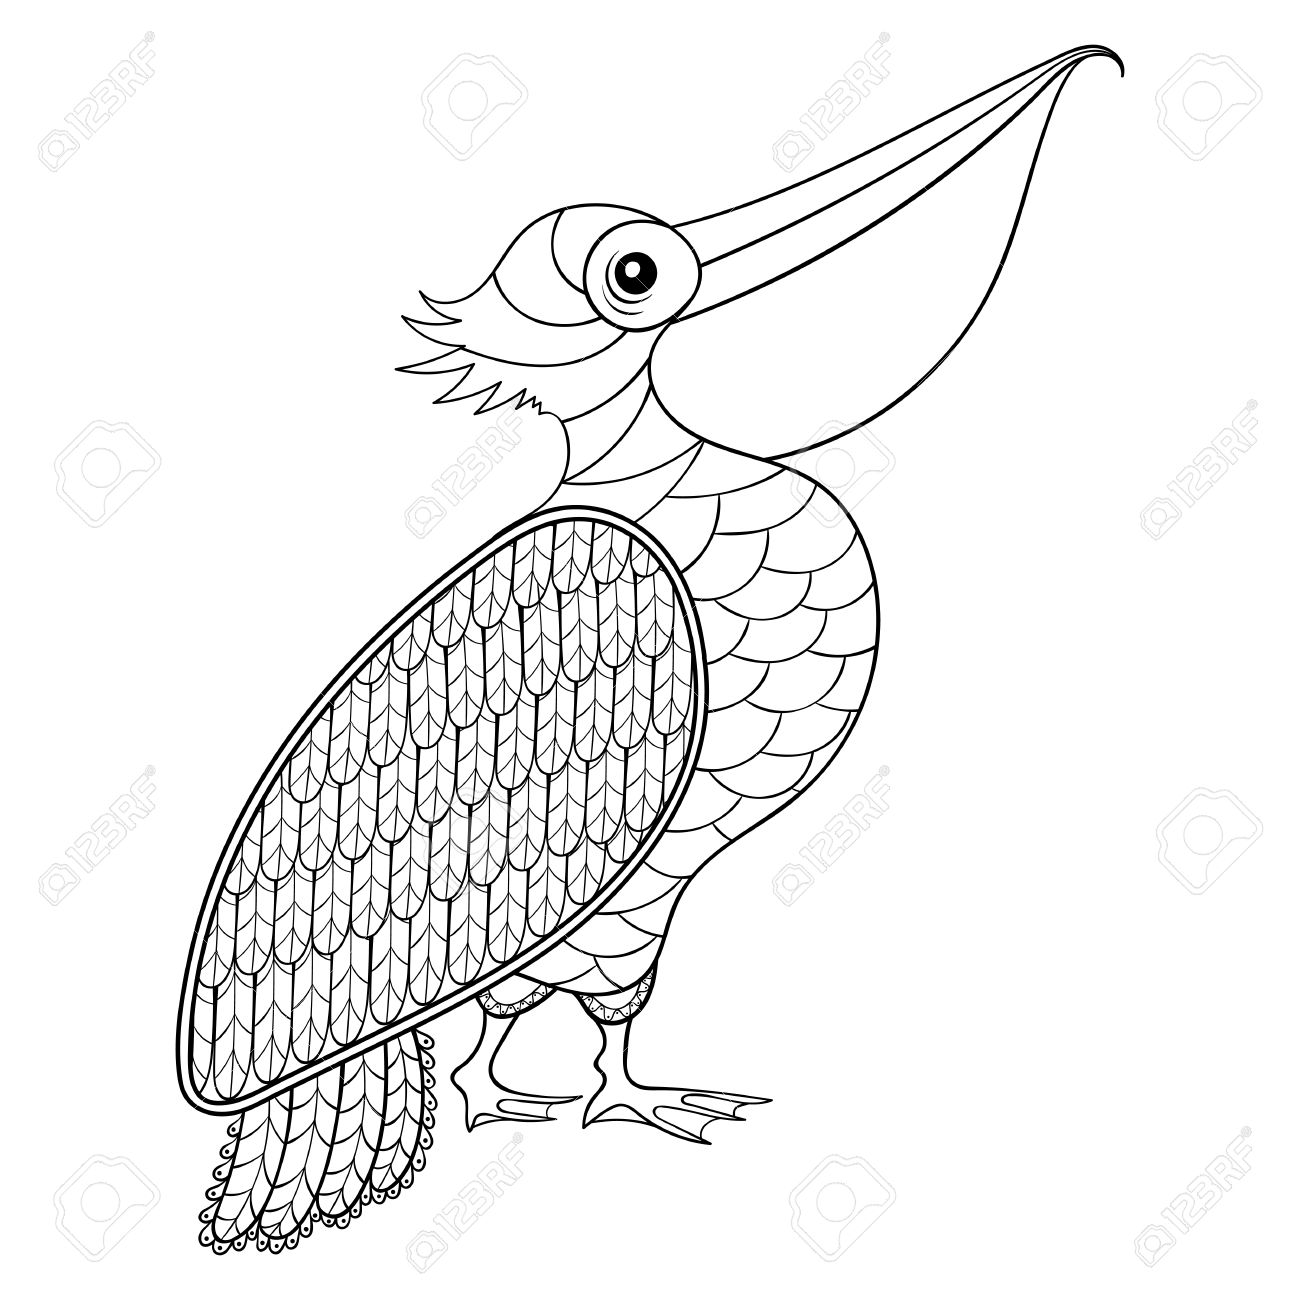 Coloring Page With Pelican, Zentangle Illustartion For Adult Coloring Books  Or Tattoos With High Details